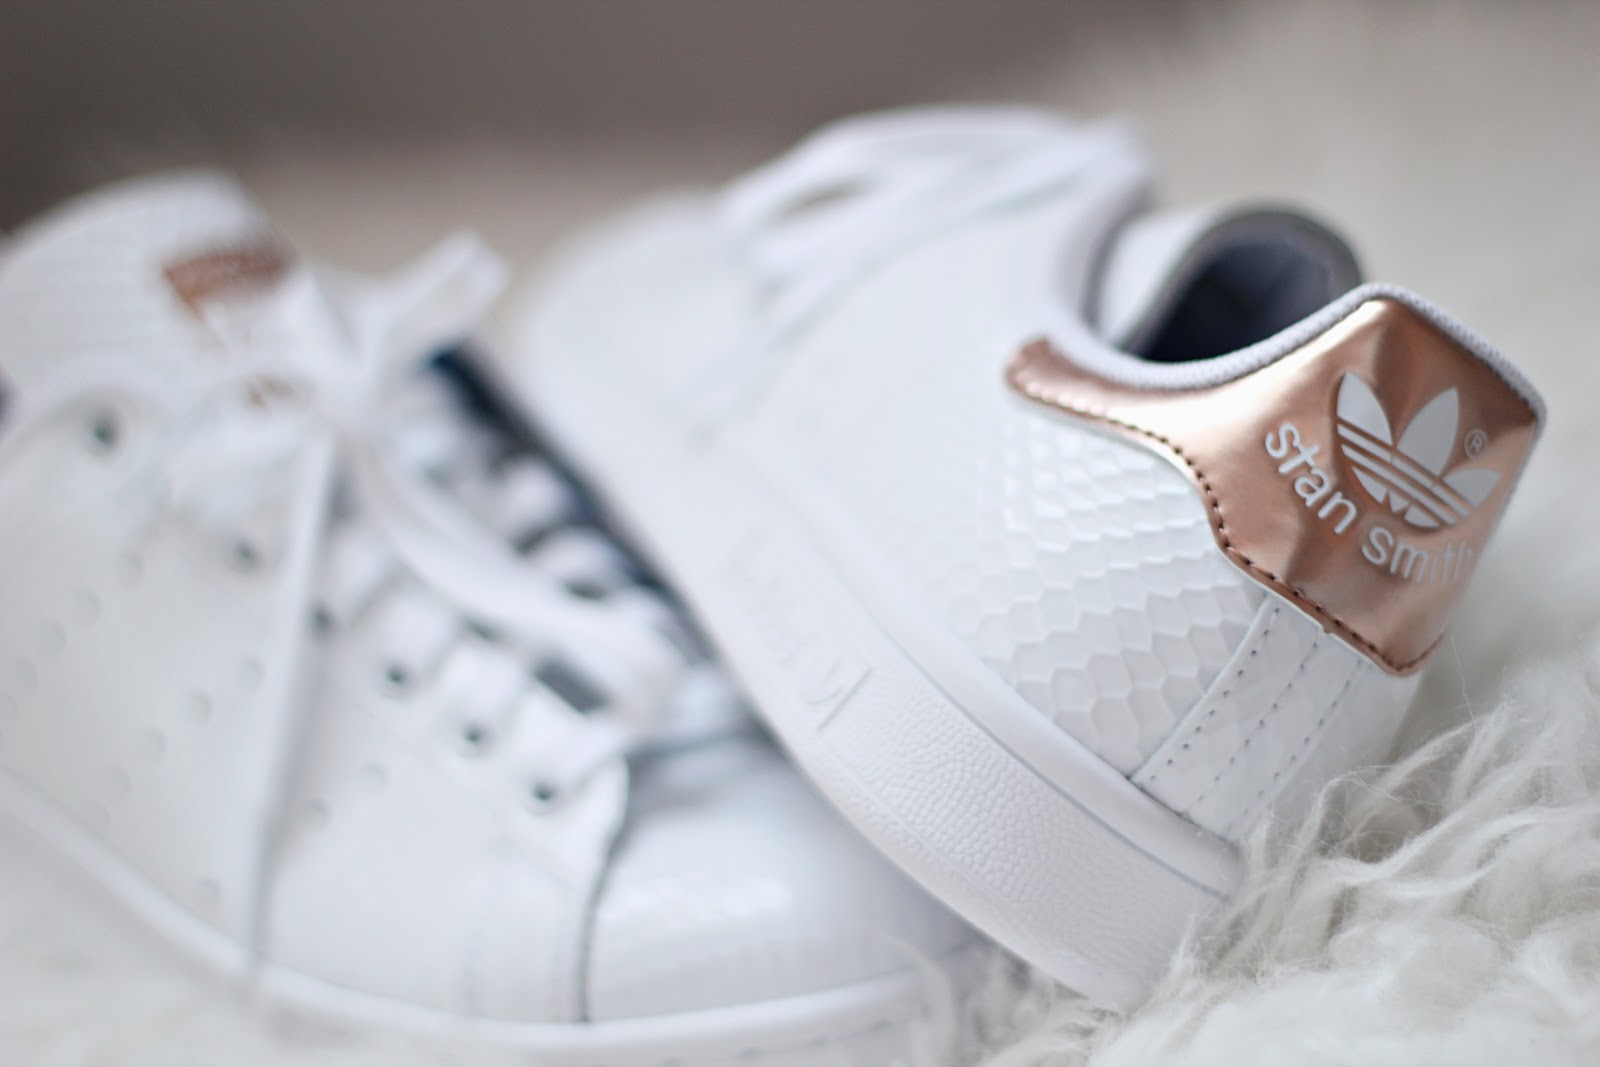 Kylie Boon PEARL ROSEGOLD Superstar 80s customs.